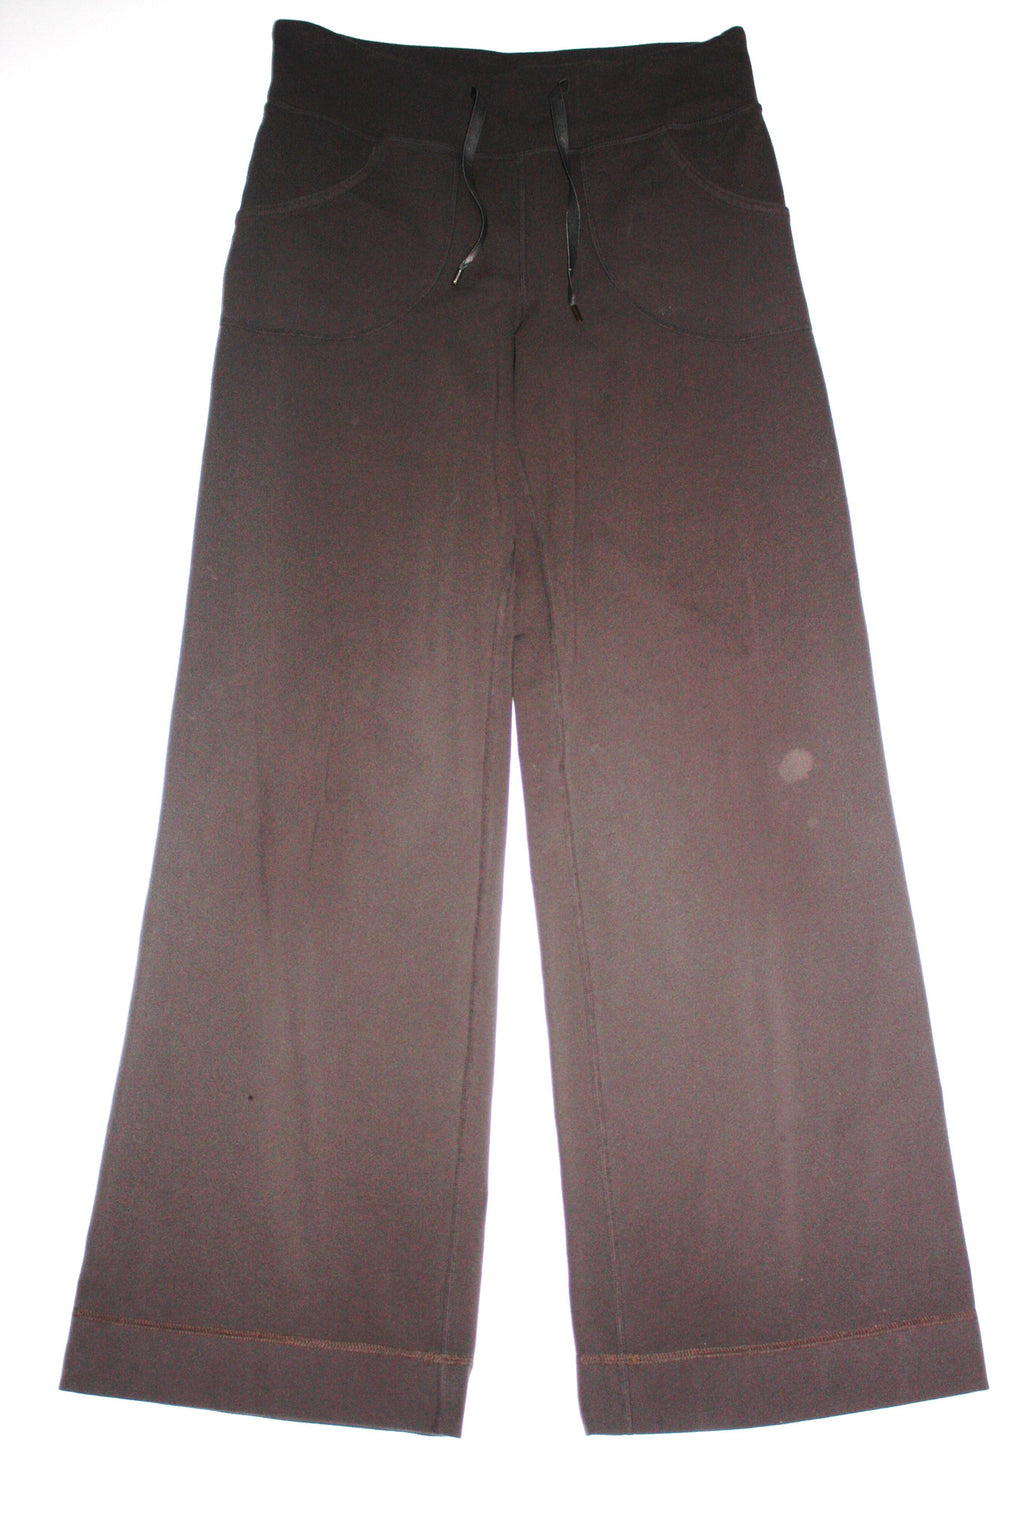 Lululemon Athletica Brown Wide Leg Pants - Joyce's Closet  - 1